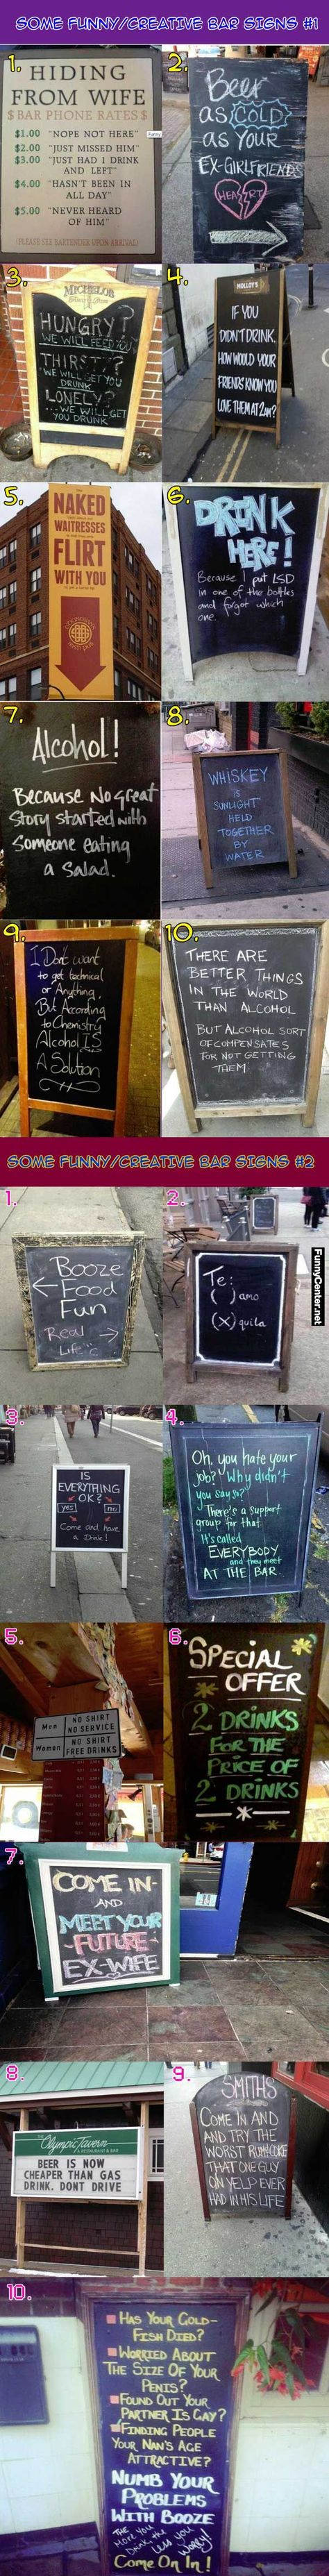 Related Posts :Girl Walks Into A Bar And Gets BurnFunny Road Signs CollectionCollection Of Funny SignsCreatively Funny Road Signs Collction